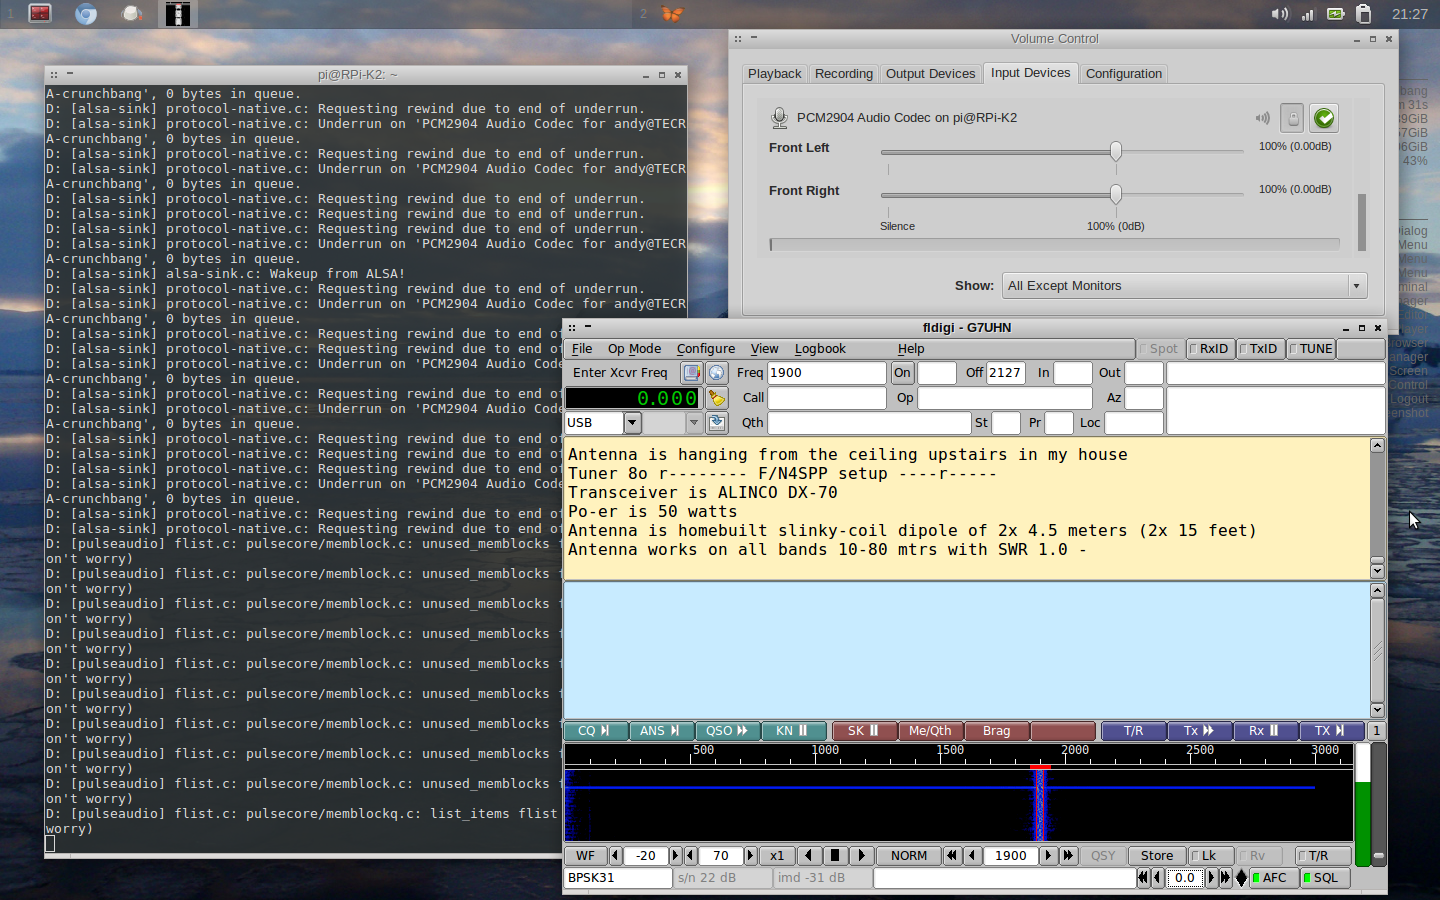 Screenshot - 210314 - FLDigi decoding remote audio from SignaLink via pulseaudio server on RPi